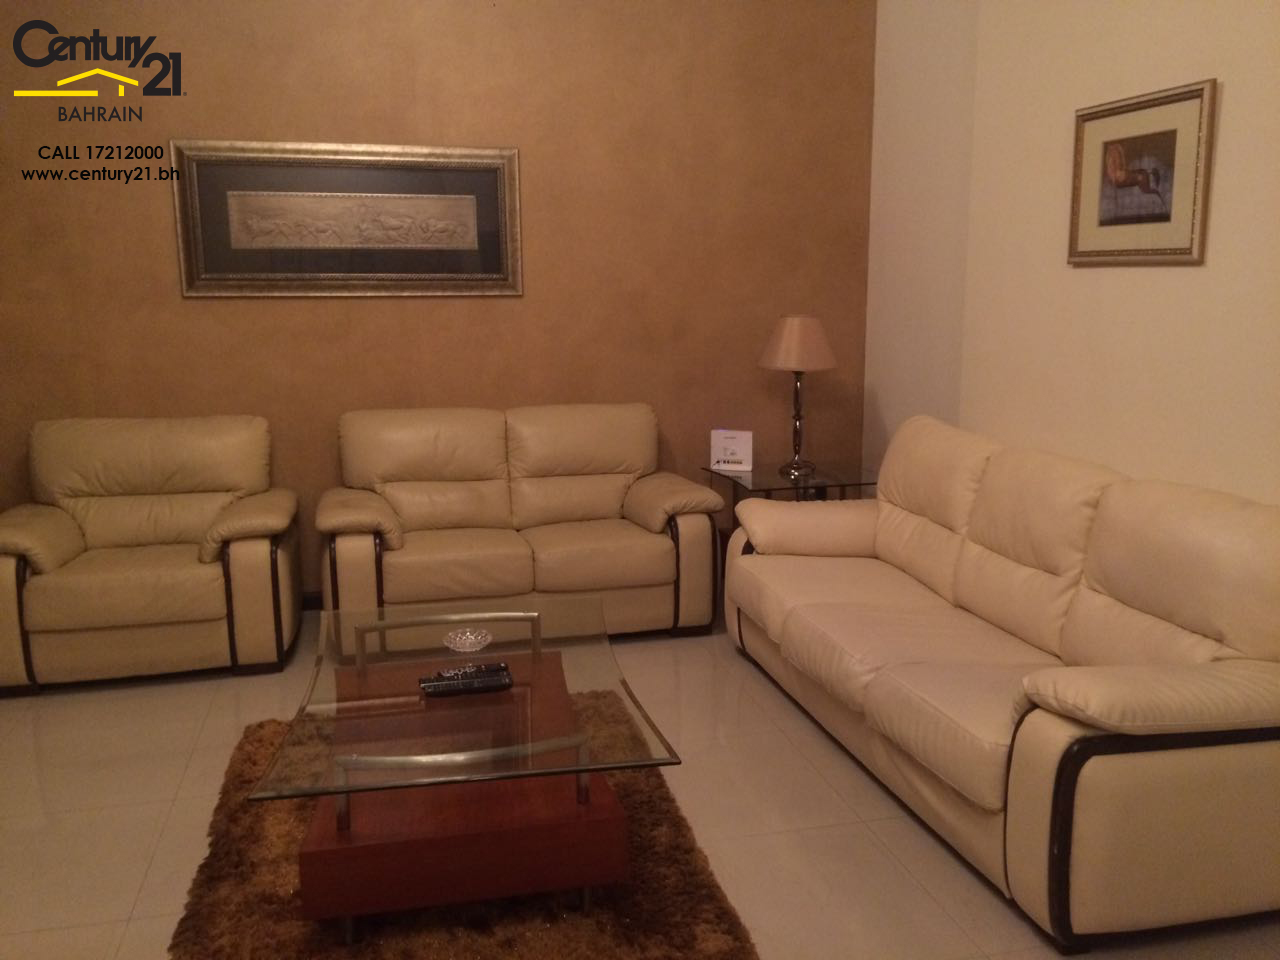 FULLY FURNISHED 2 BEDROOM APARTMENTS FOR FOR BD 550 INCLUSIVE! FR645